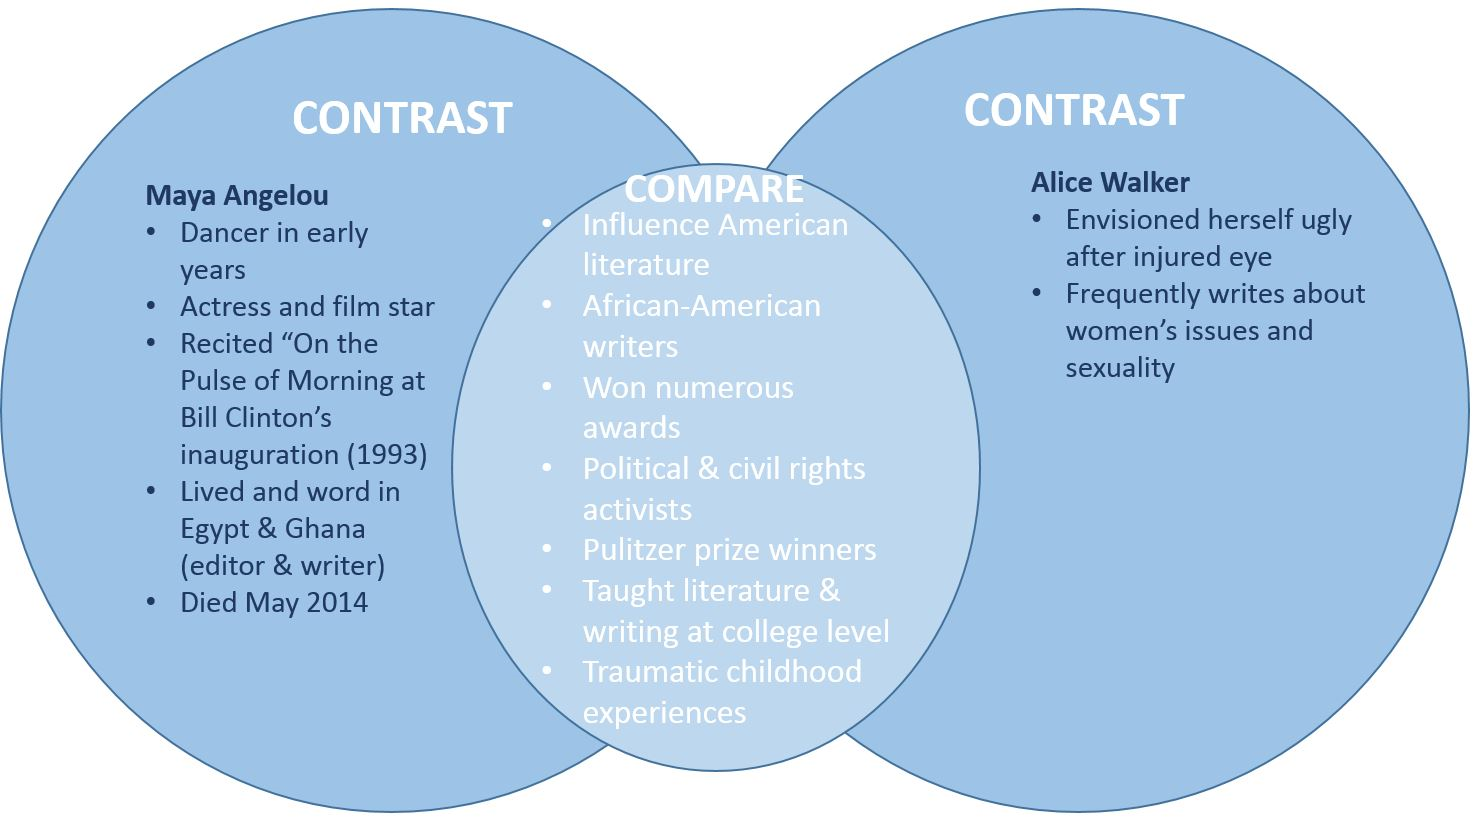 essay on compare and contrast This type of essay can be really confusing, as balancing between comparing and contrasting can be rather difficult check out our compare and contrast essay samples.